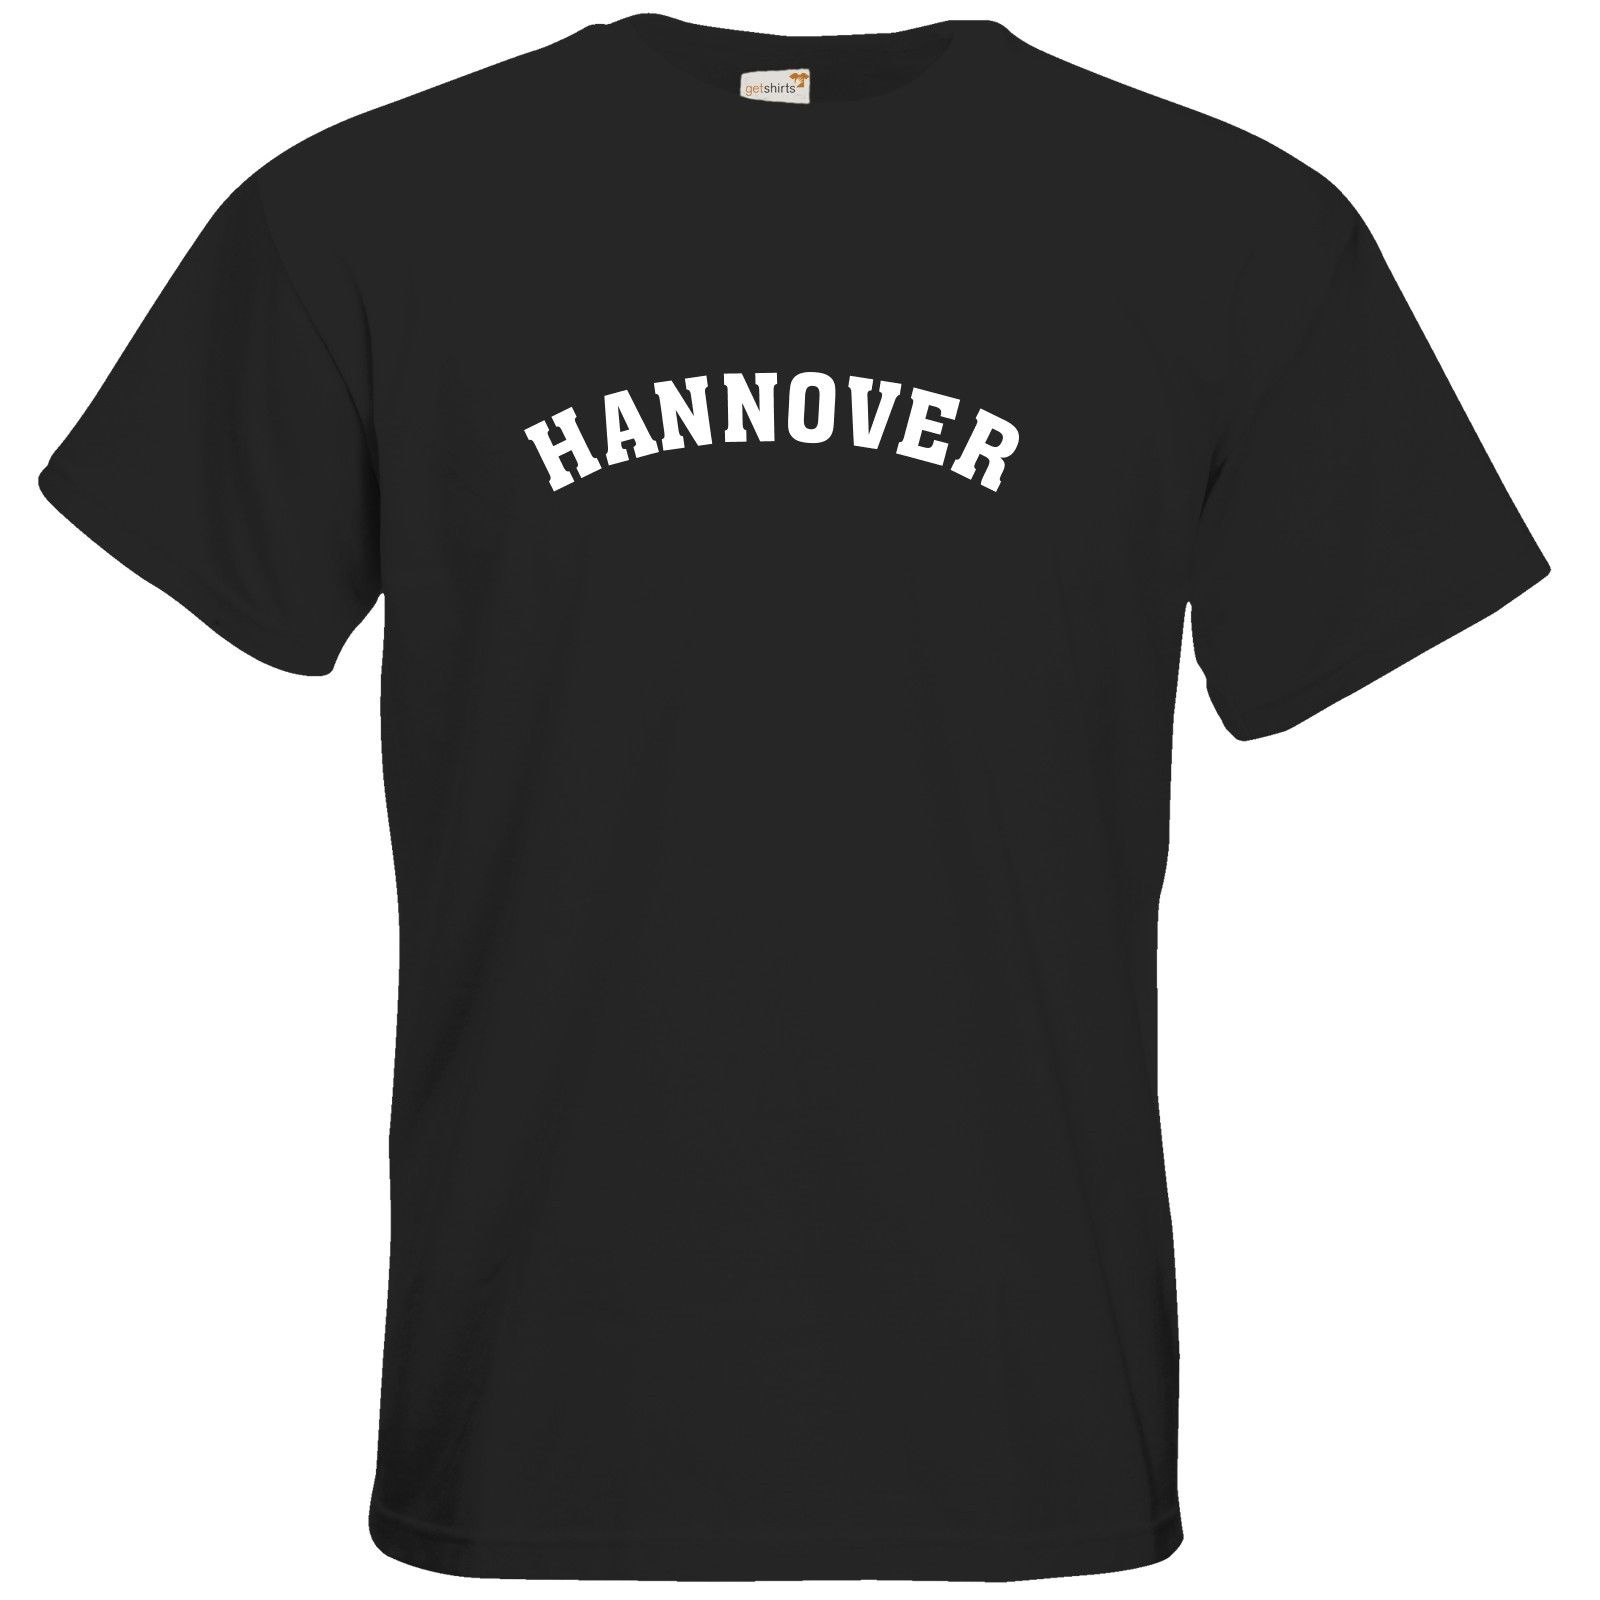 Best buy ) }}getshirts - Best of - T-Shirt - City - Hannover